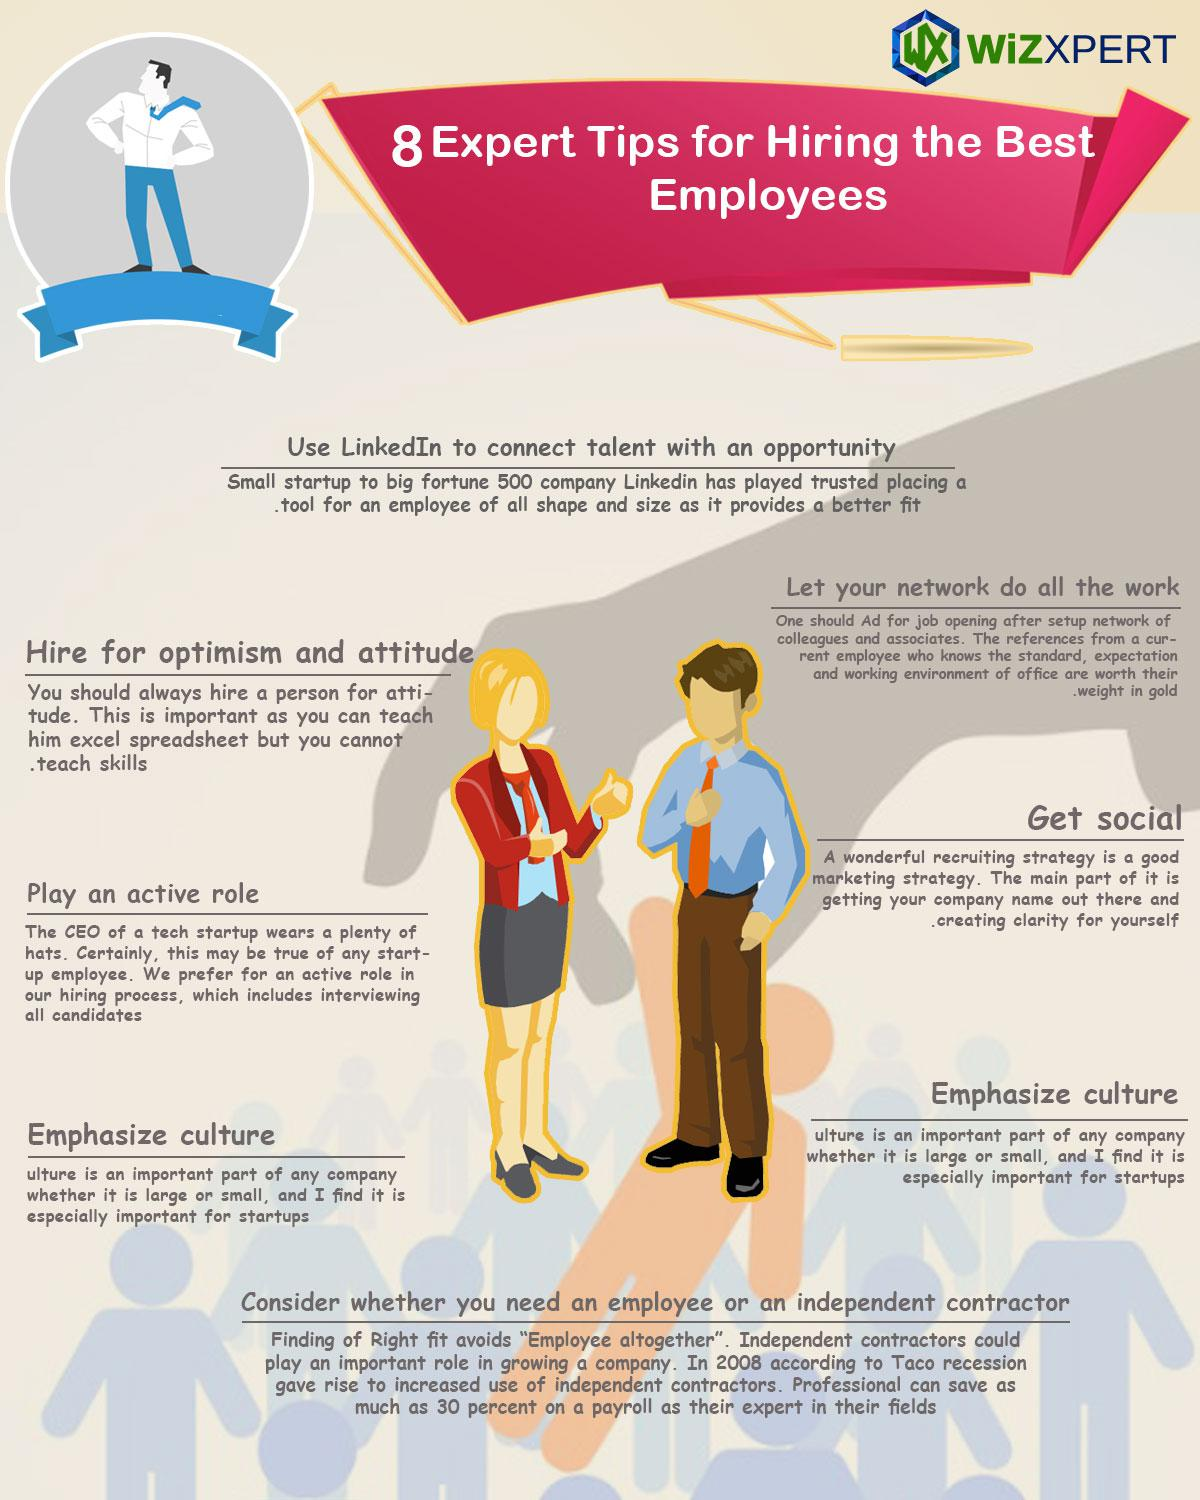 8 Expert Tips for Hiring the Best Employees